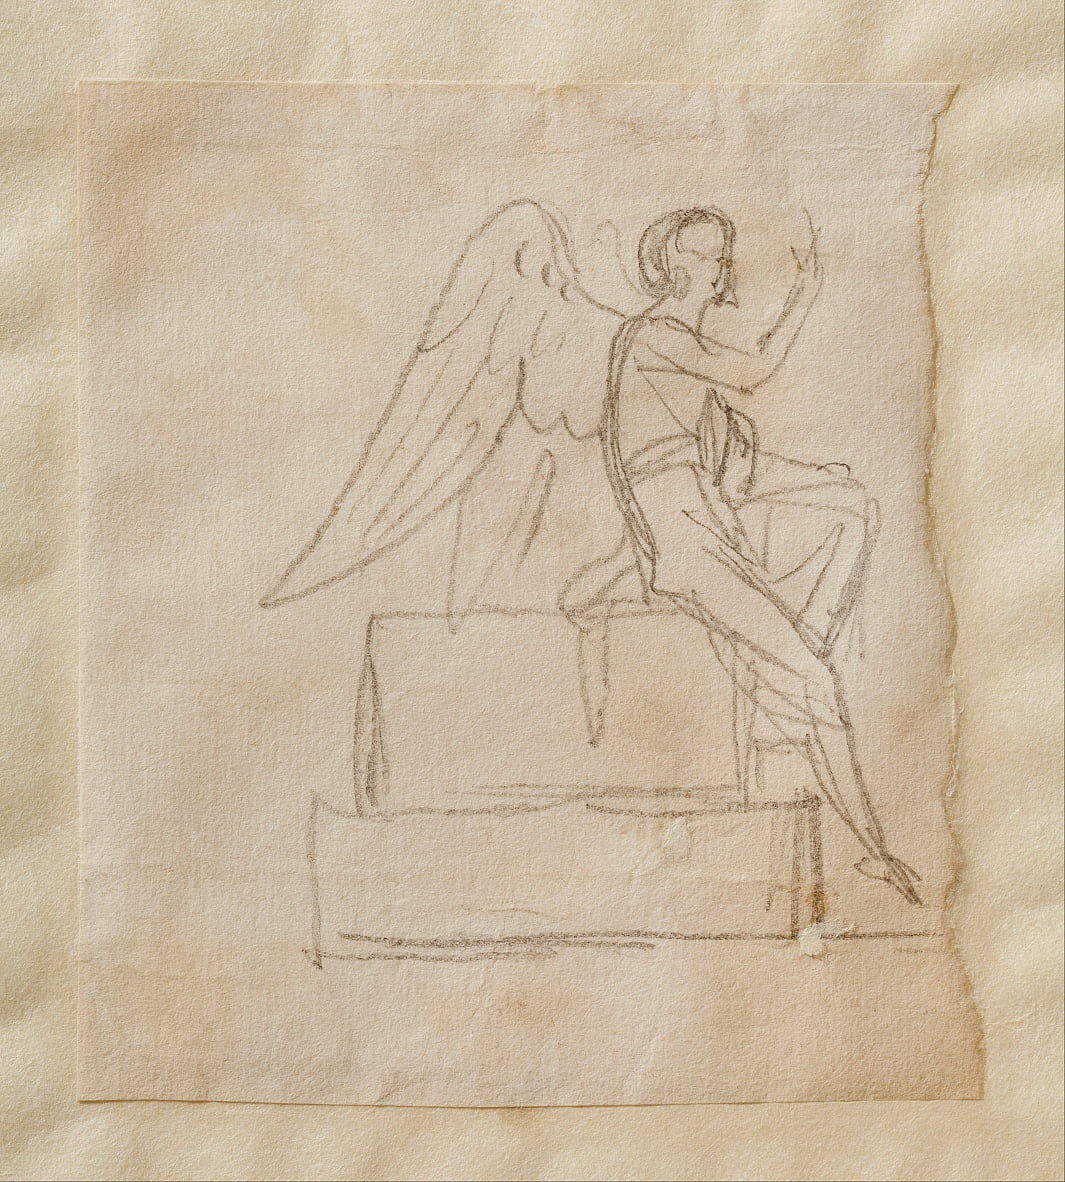 The Angel on Christs Sarcophagus by Bertel Thorvaldsen